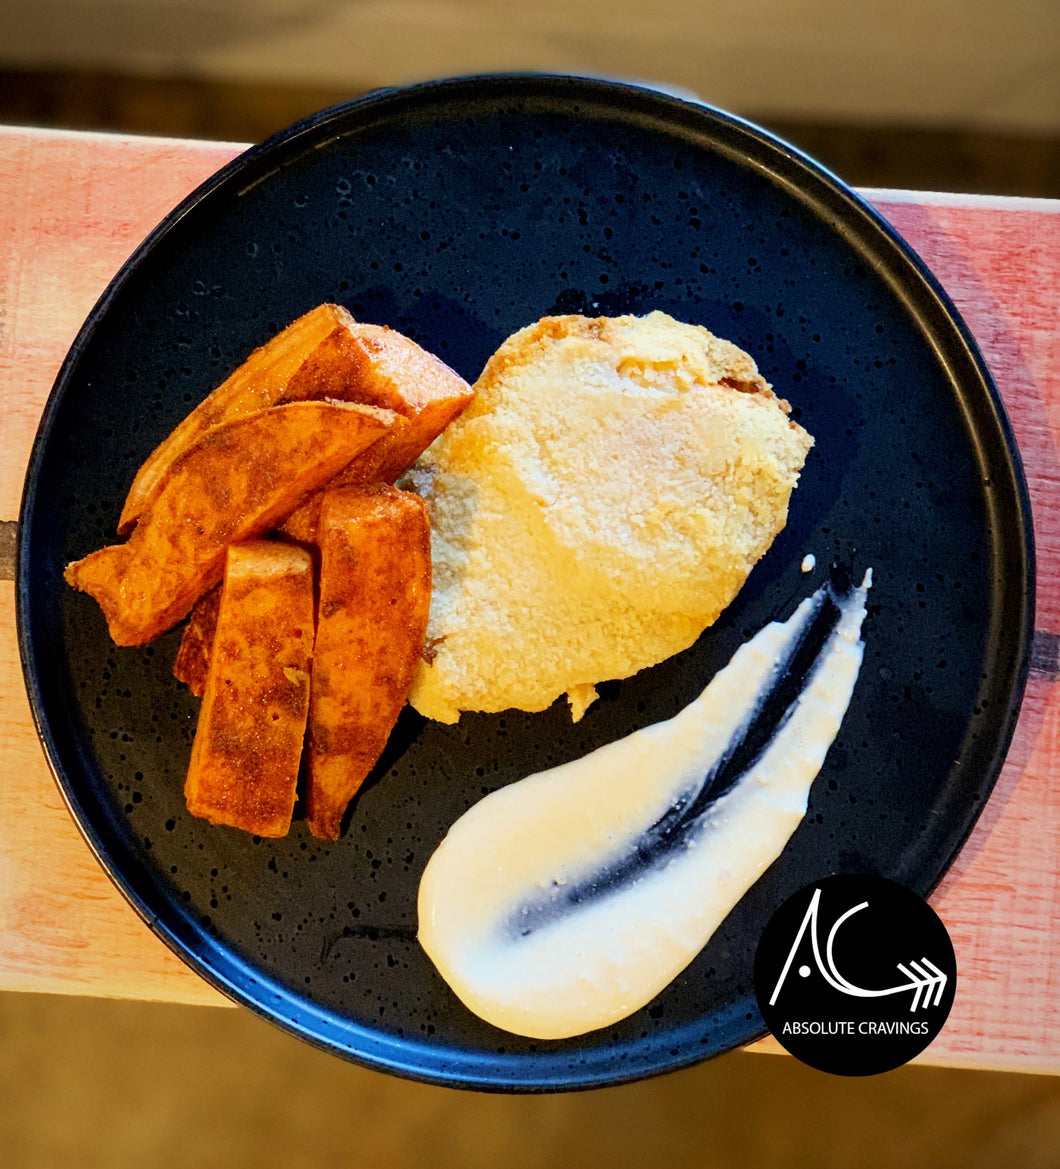 PALEO - Schnitzel, sweet potato wedges & aioli